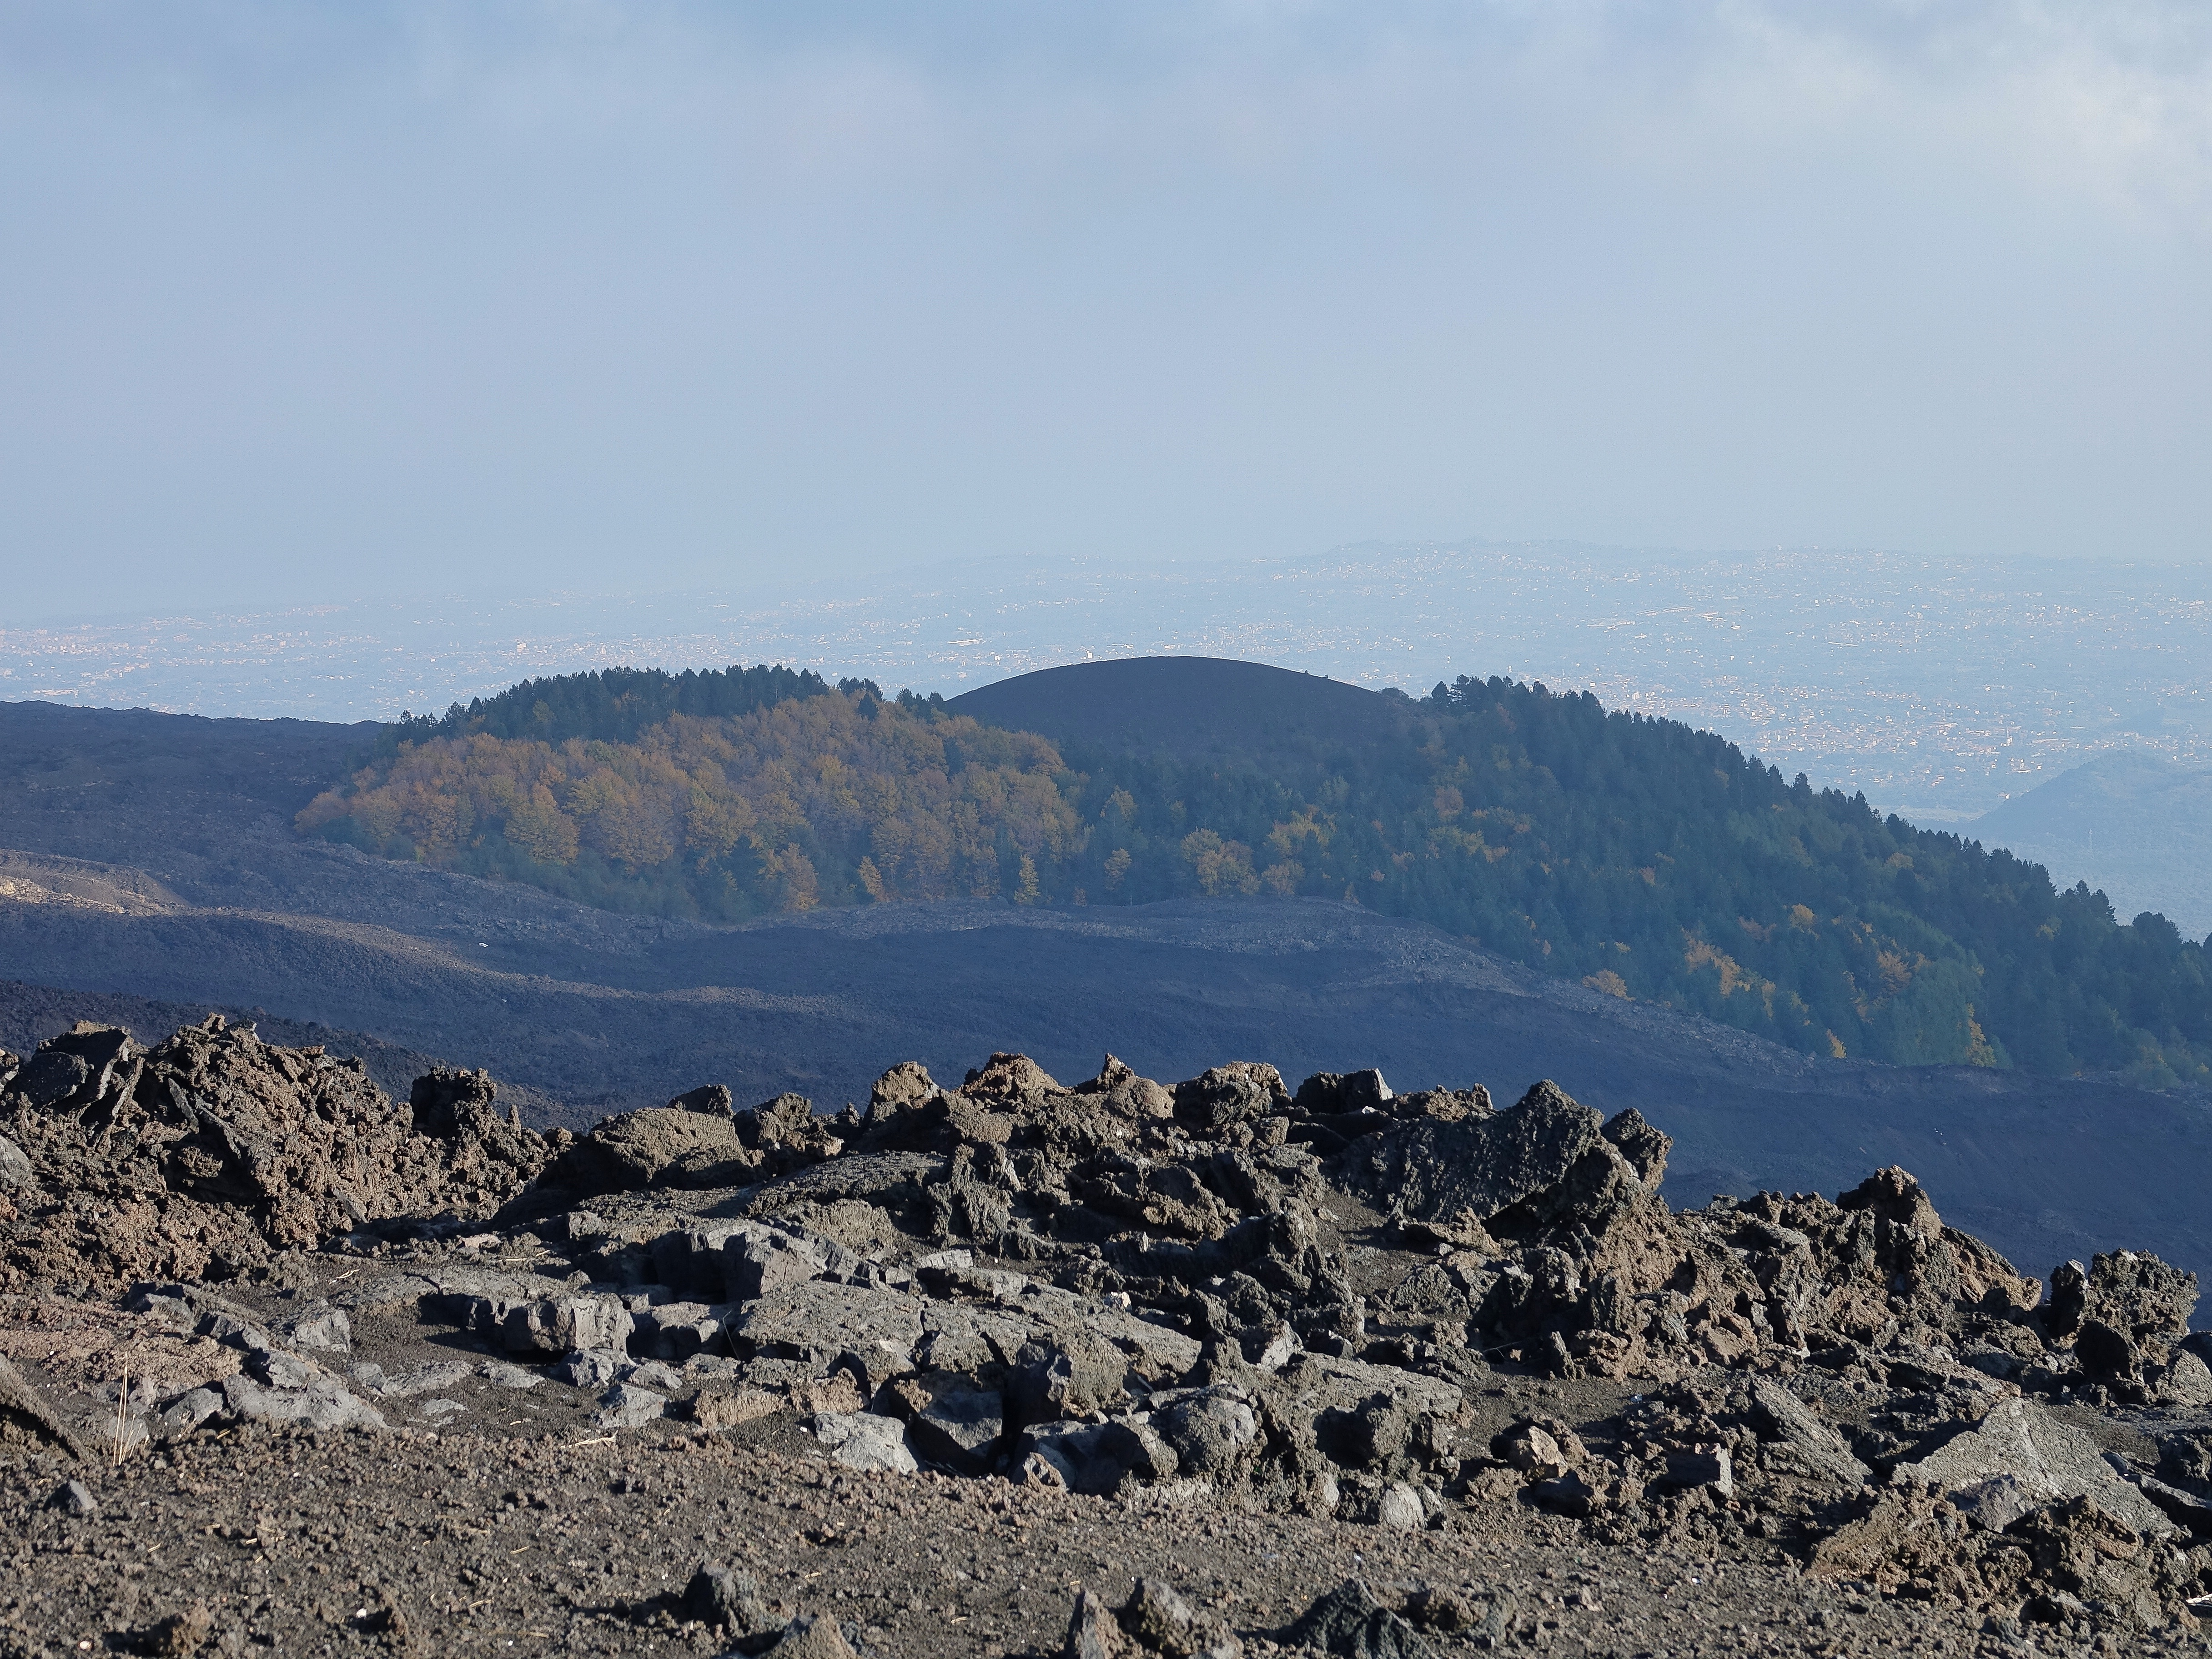 View from Mt Etna, barren lava rock and the occasional small forest